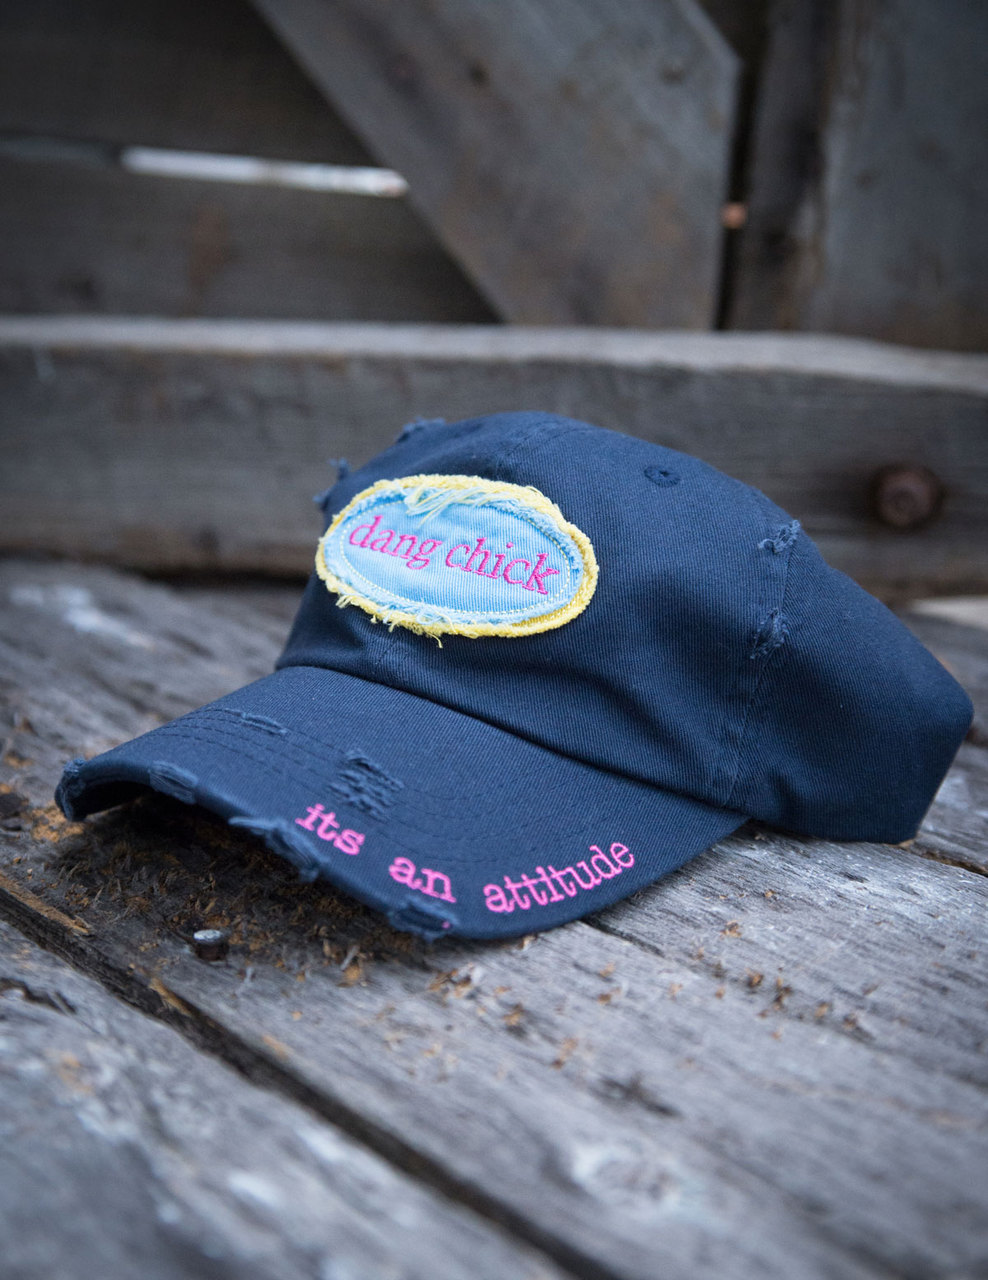 Dang Chick Hat By Dang Chicks